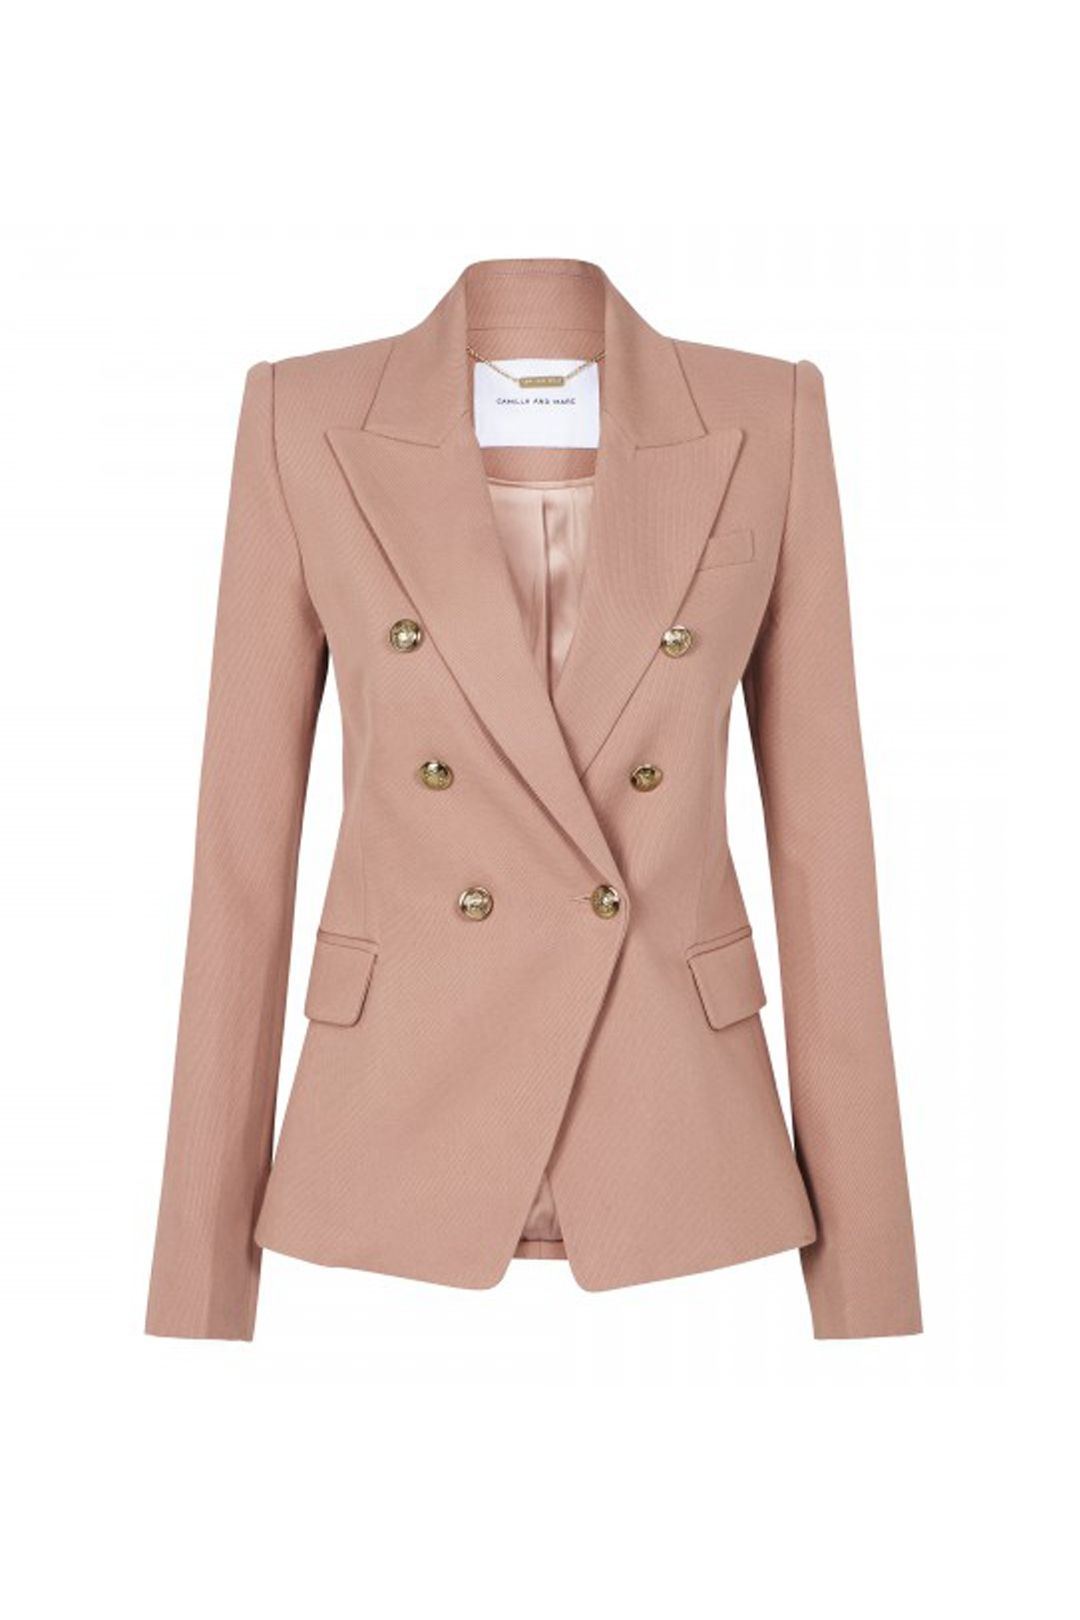 Camilla and Marc - Dimmer Blazer - Blush - Front